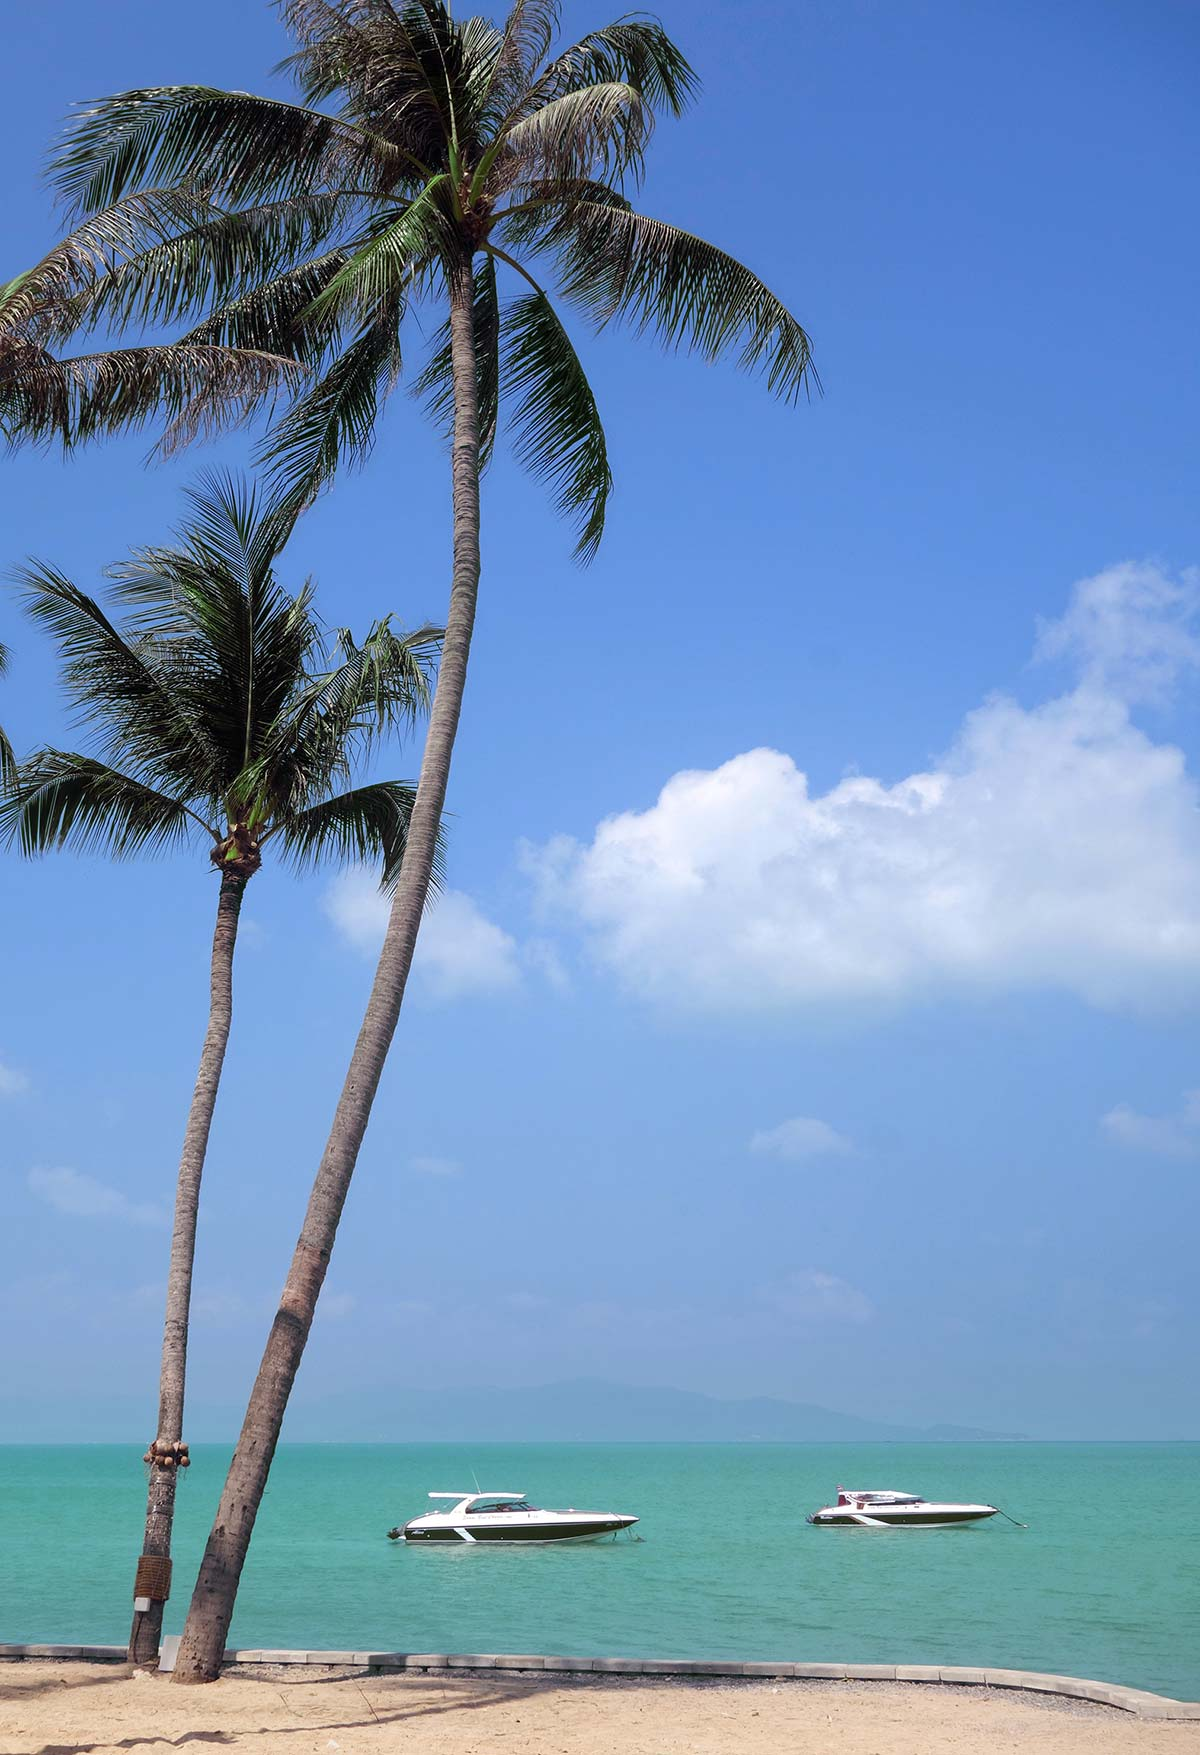 Koh Samui : The most famous beaches